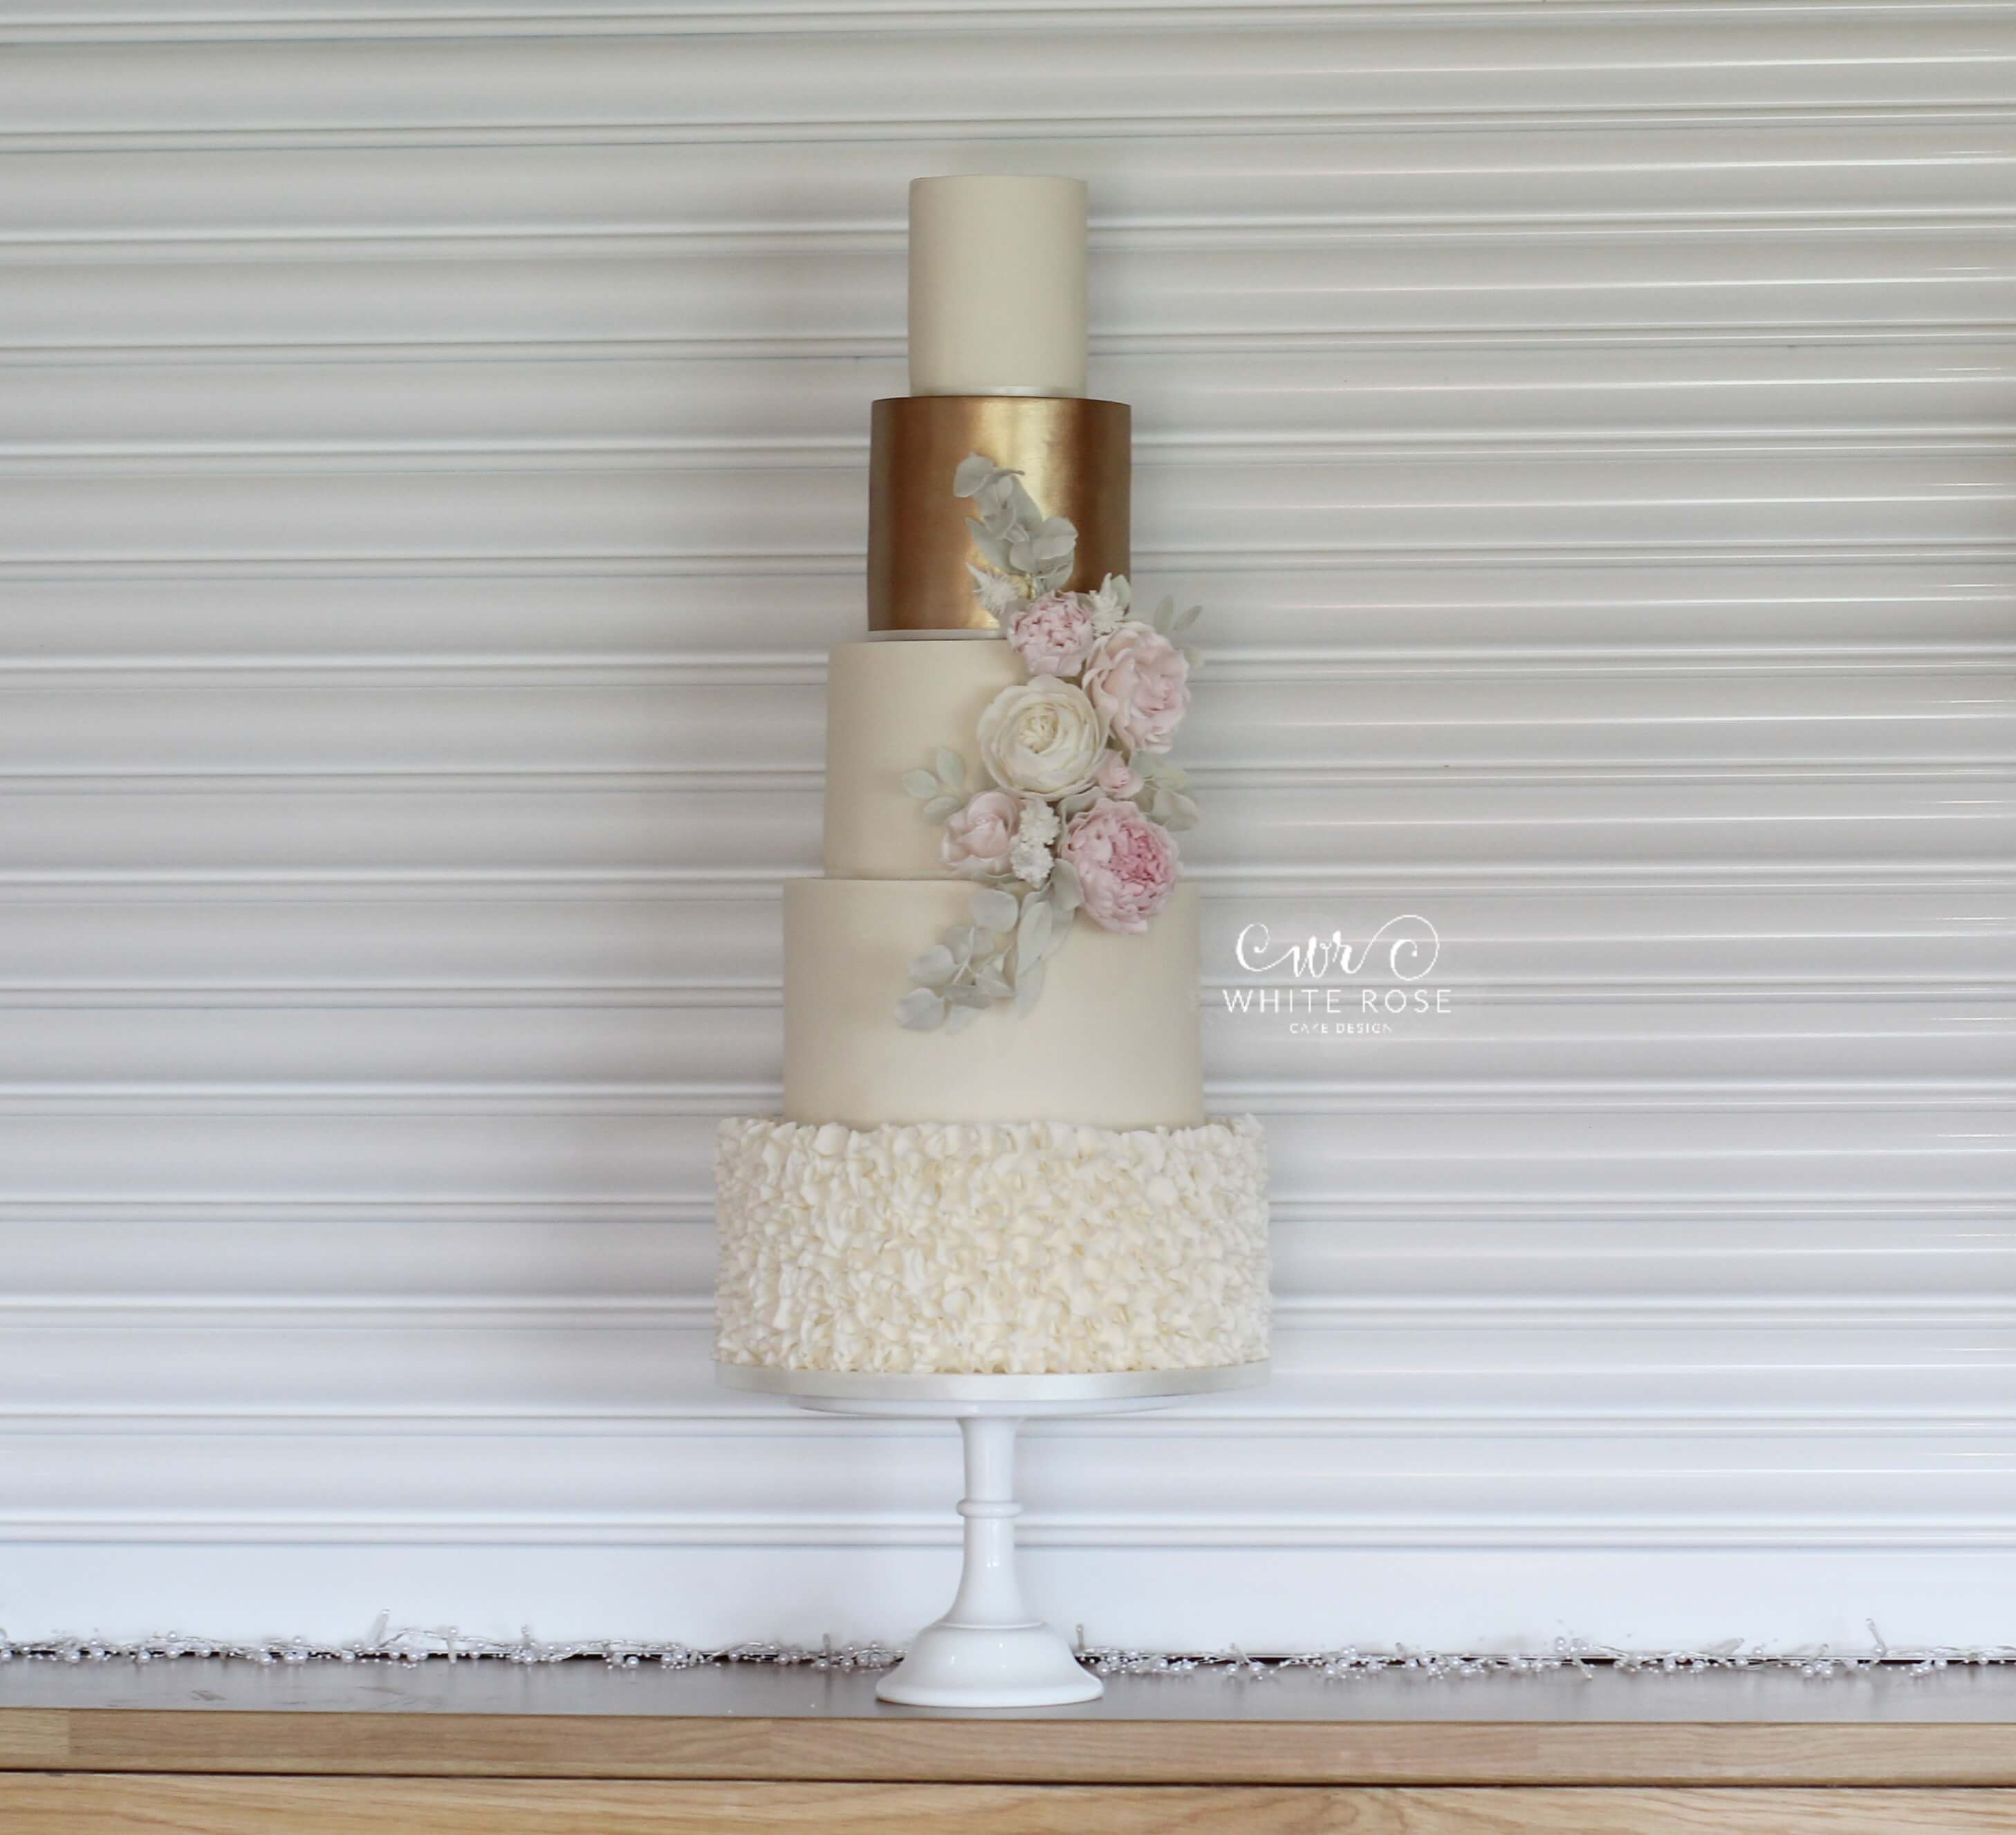 Five Tier Elegant Wedding Cake – Ivory and Copper with Blush Flowers by White Rose Cake Design Bespoke Wedding Cakes in West Yorkshire